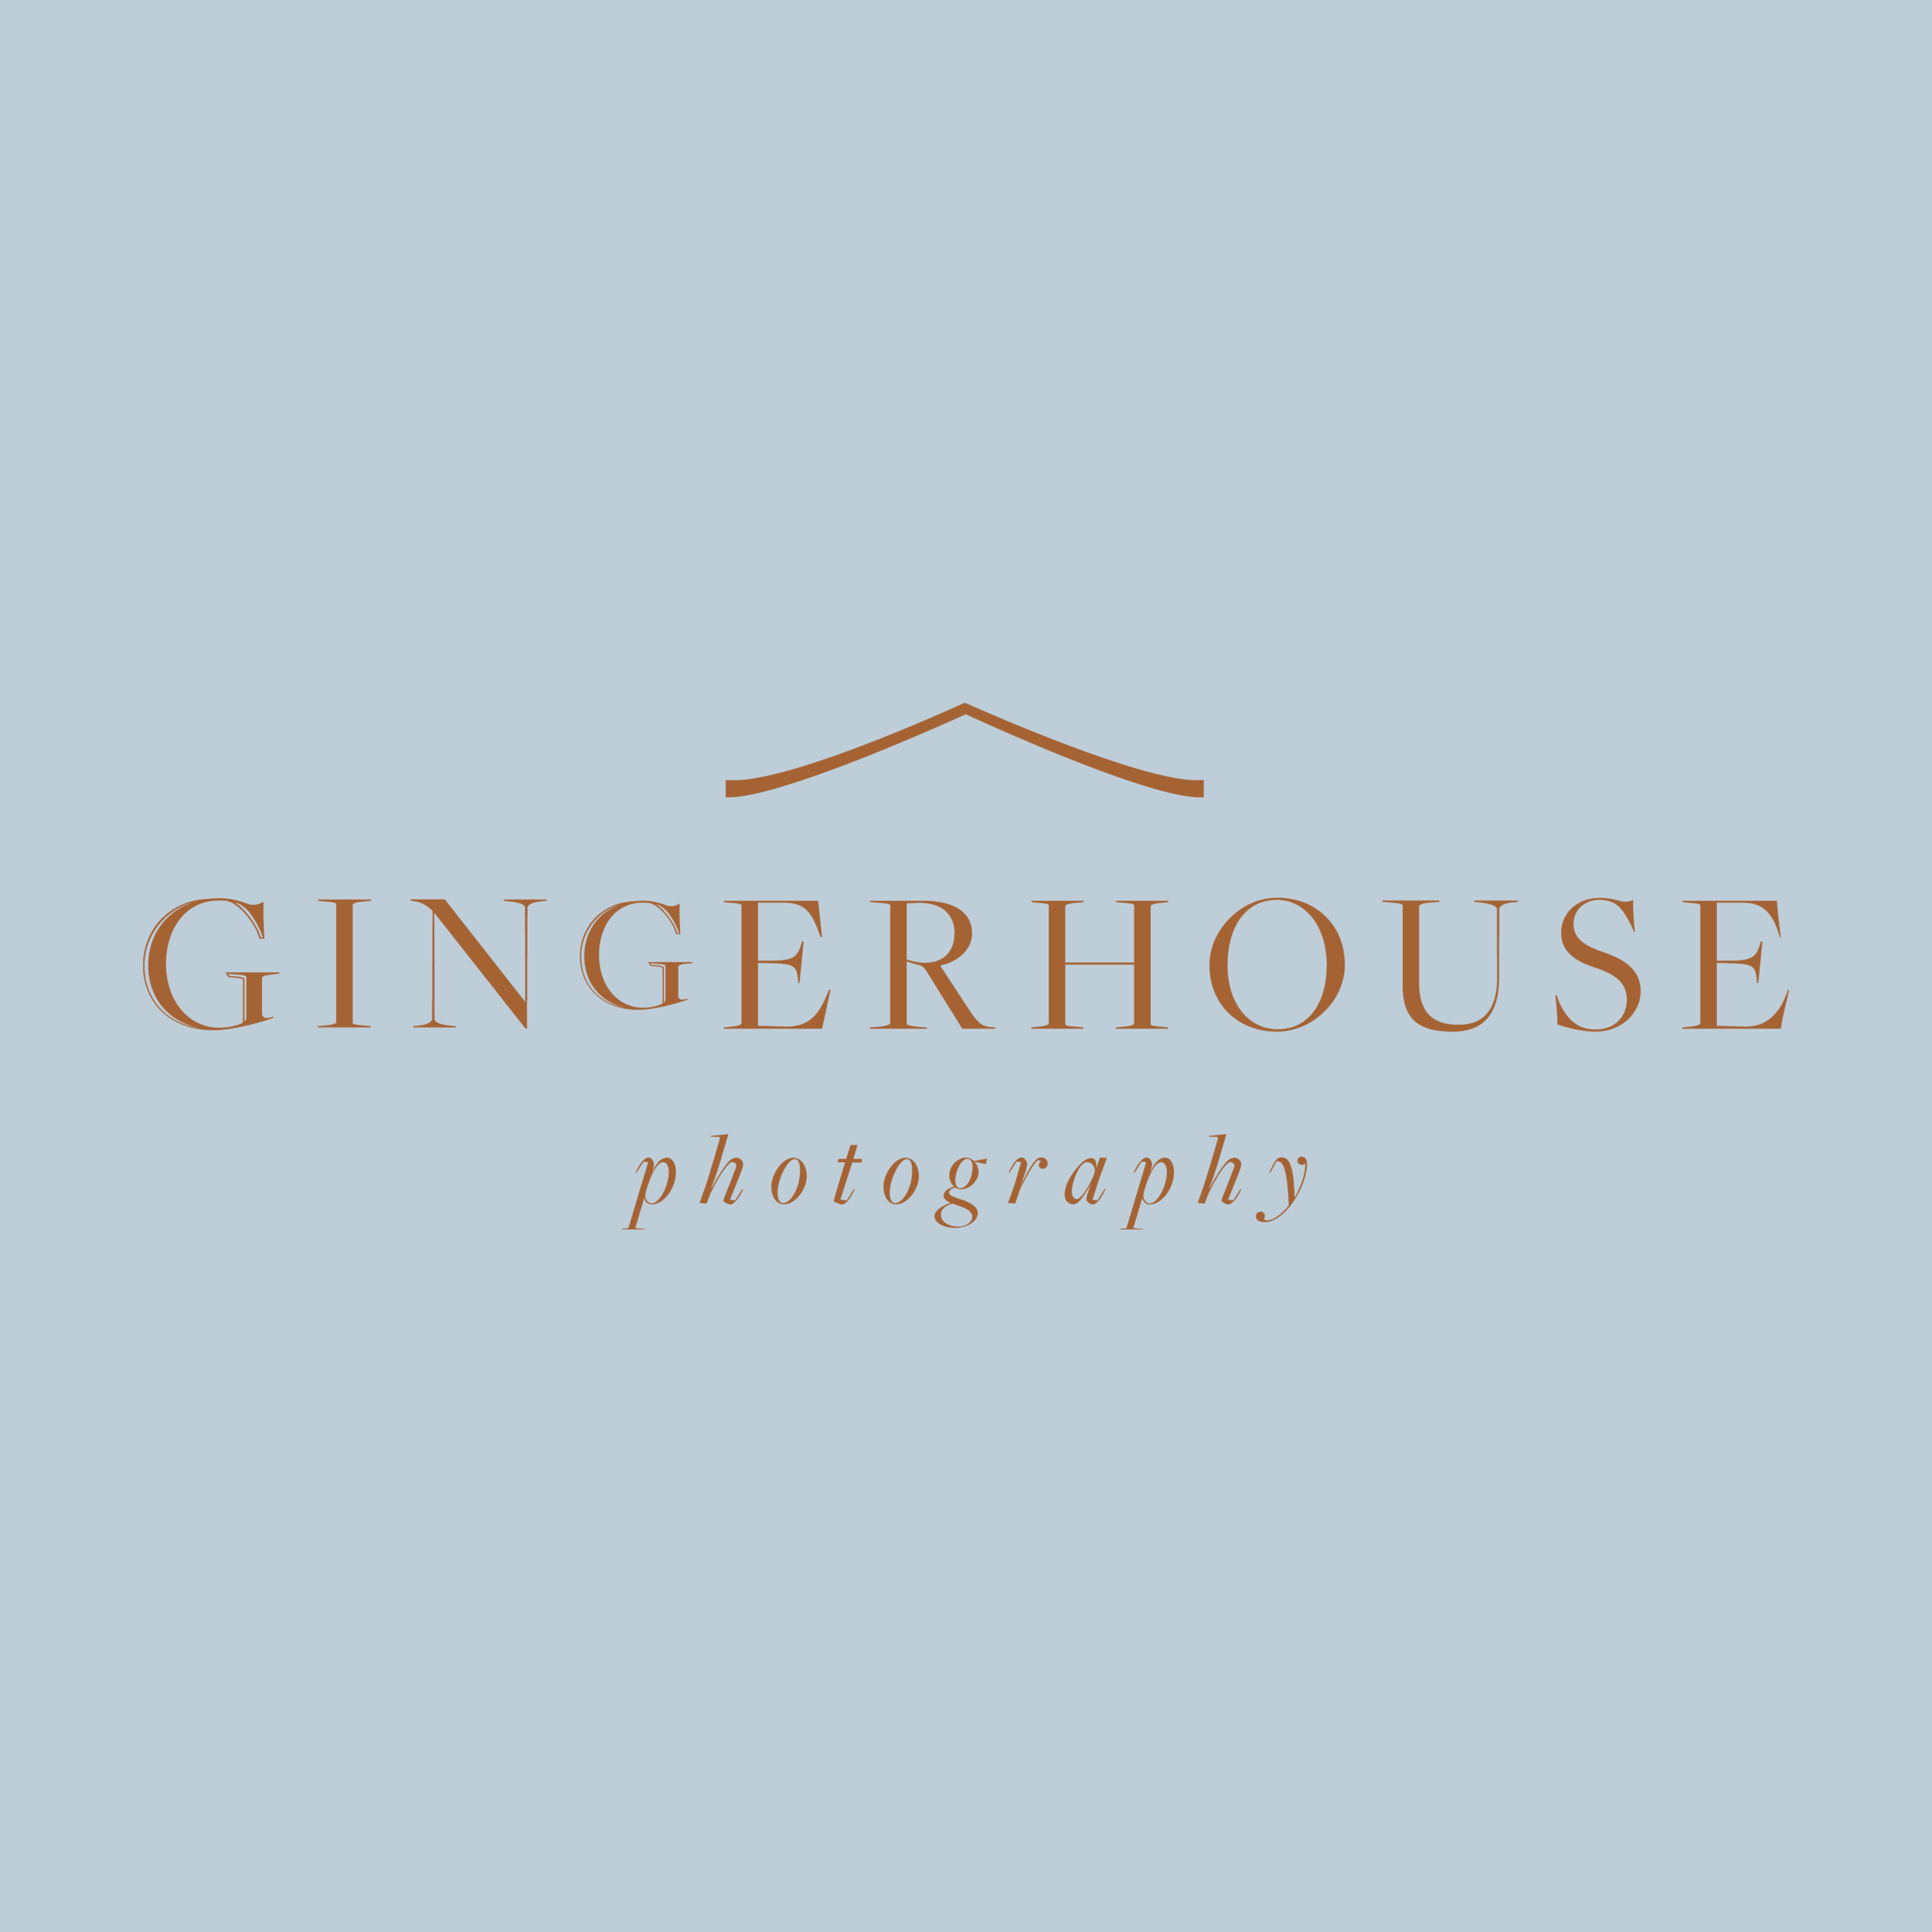 Gingerhouse Photography - Kira Hyde Creative